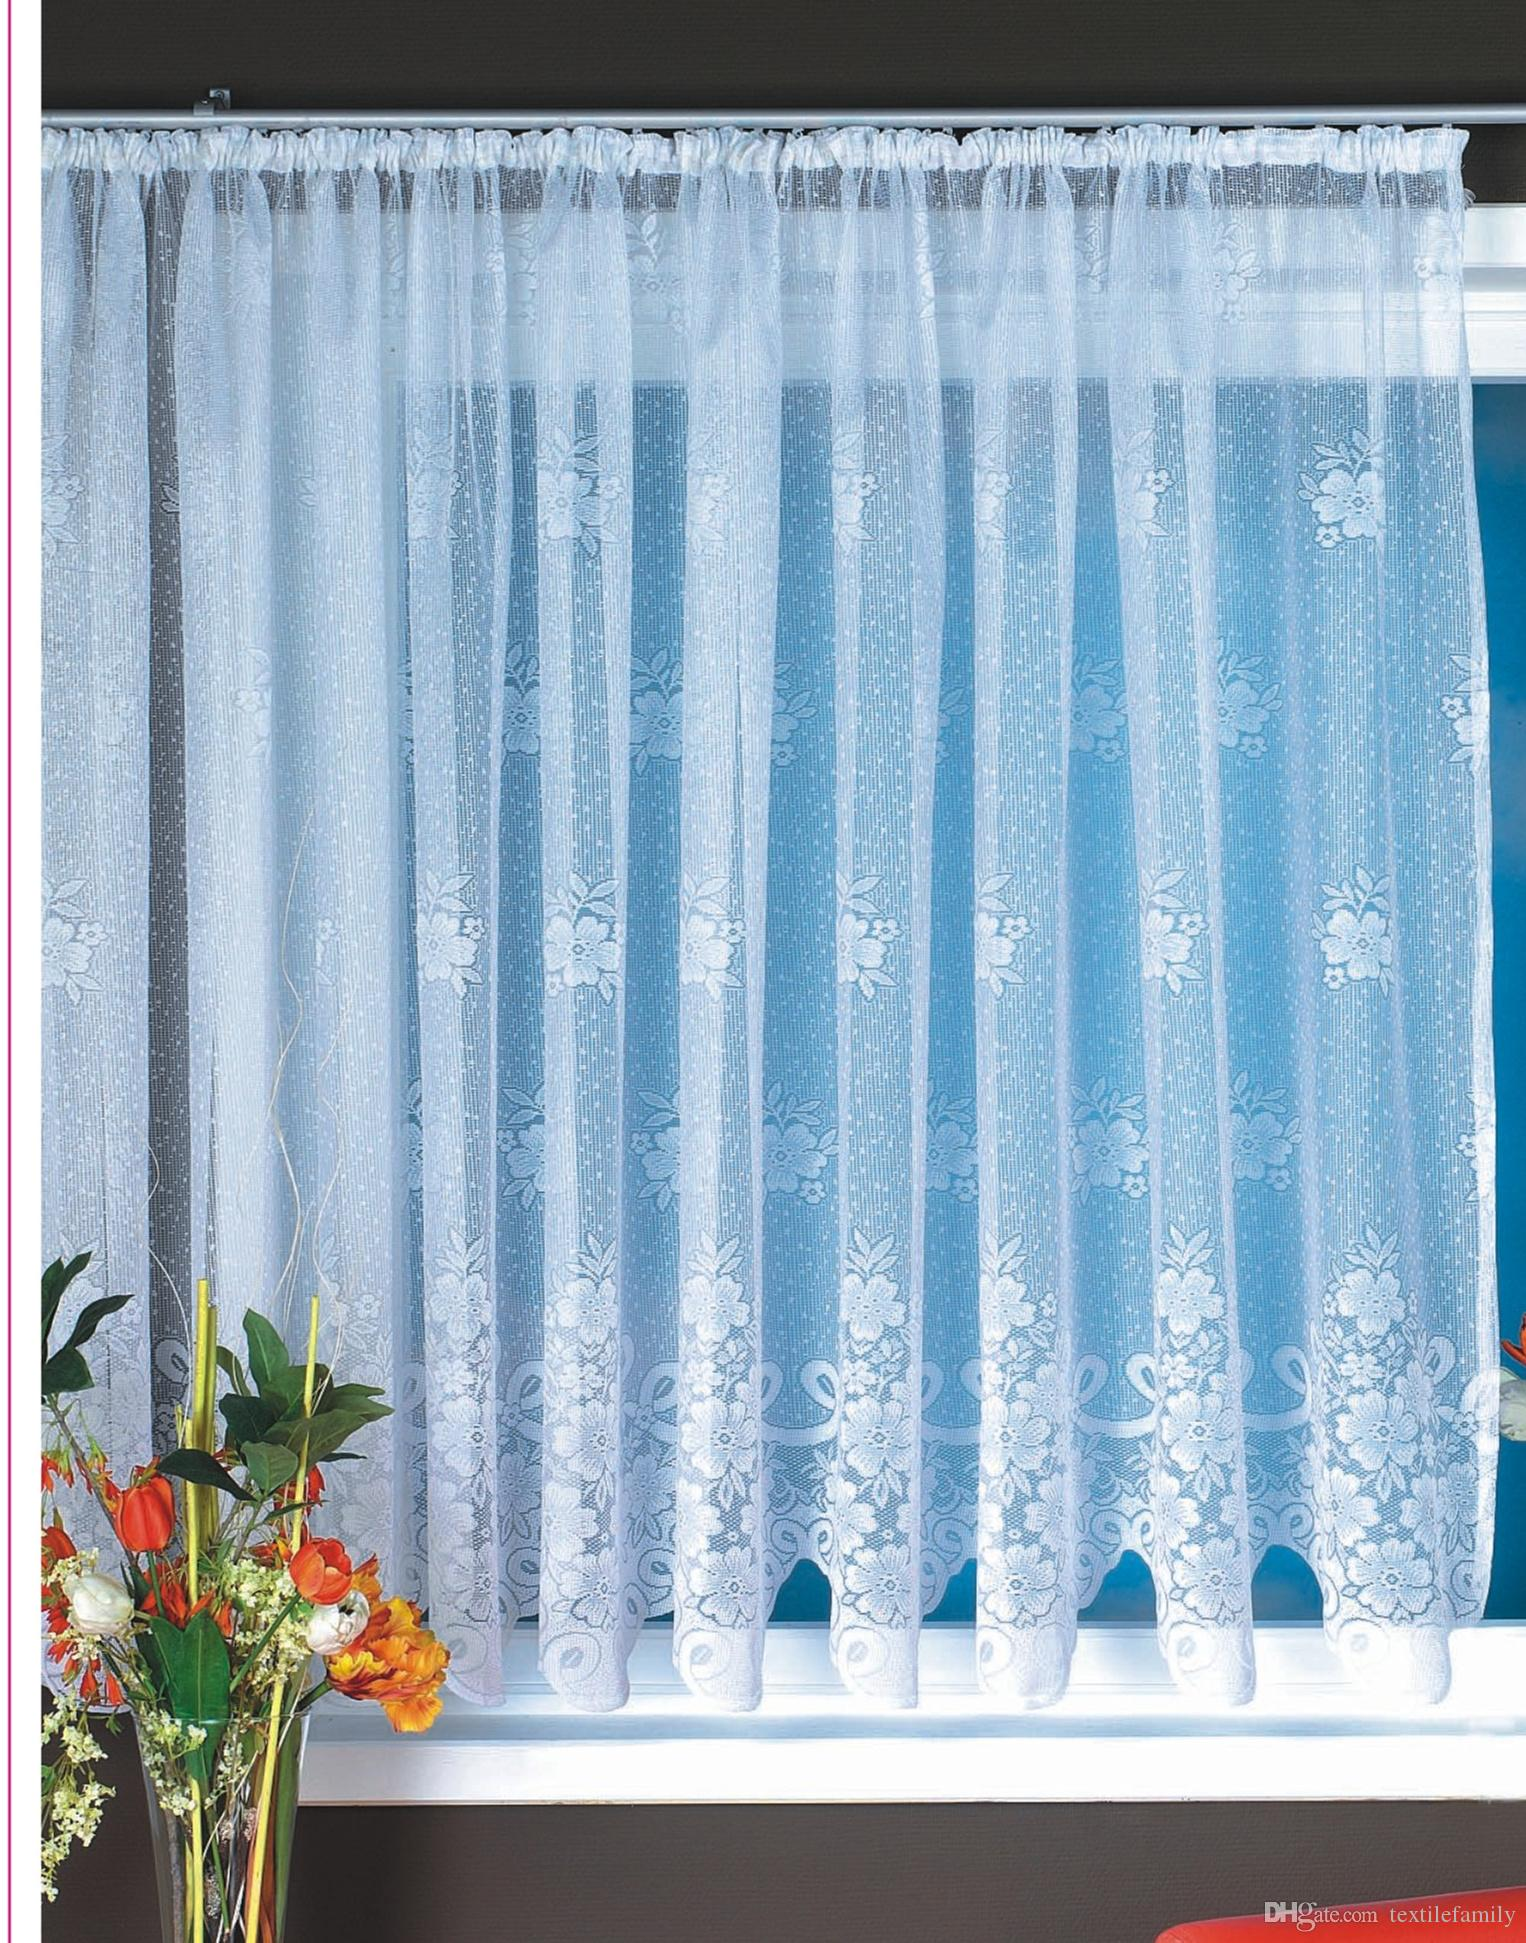 full sheer curtain curtains jcpenney sale of outlet sears size custom x on window photo near treatments me